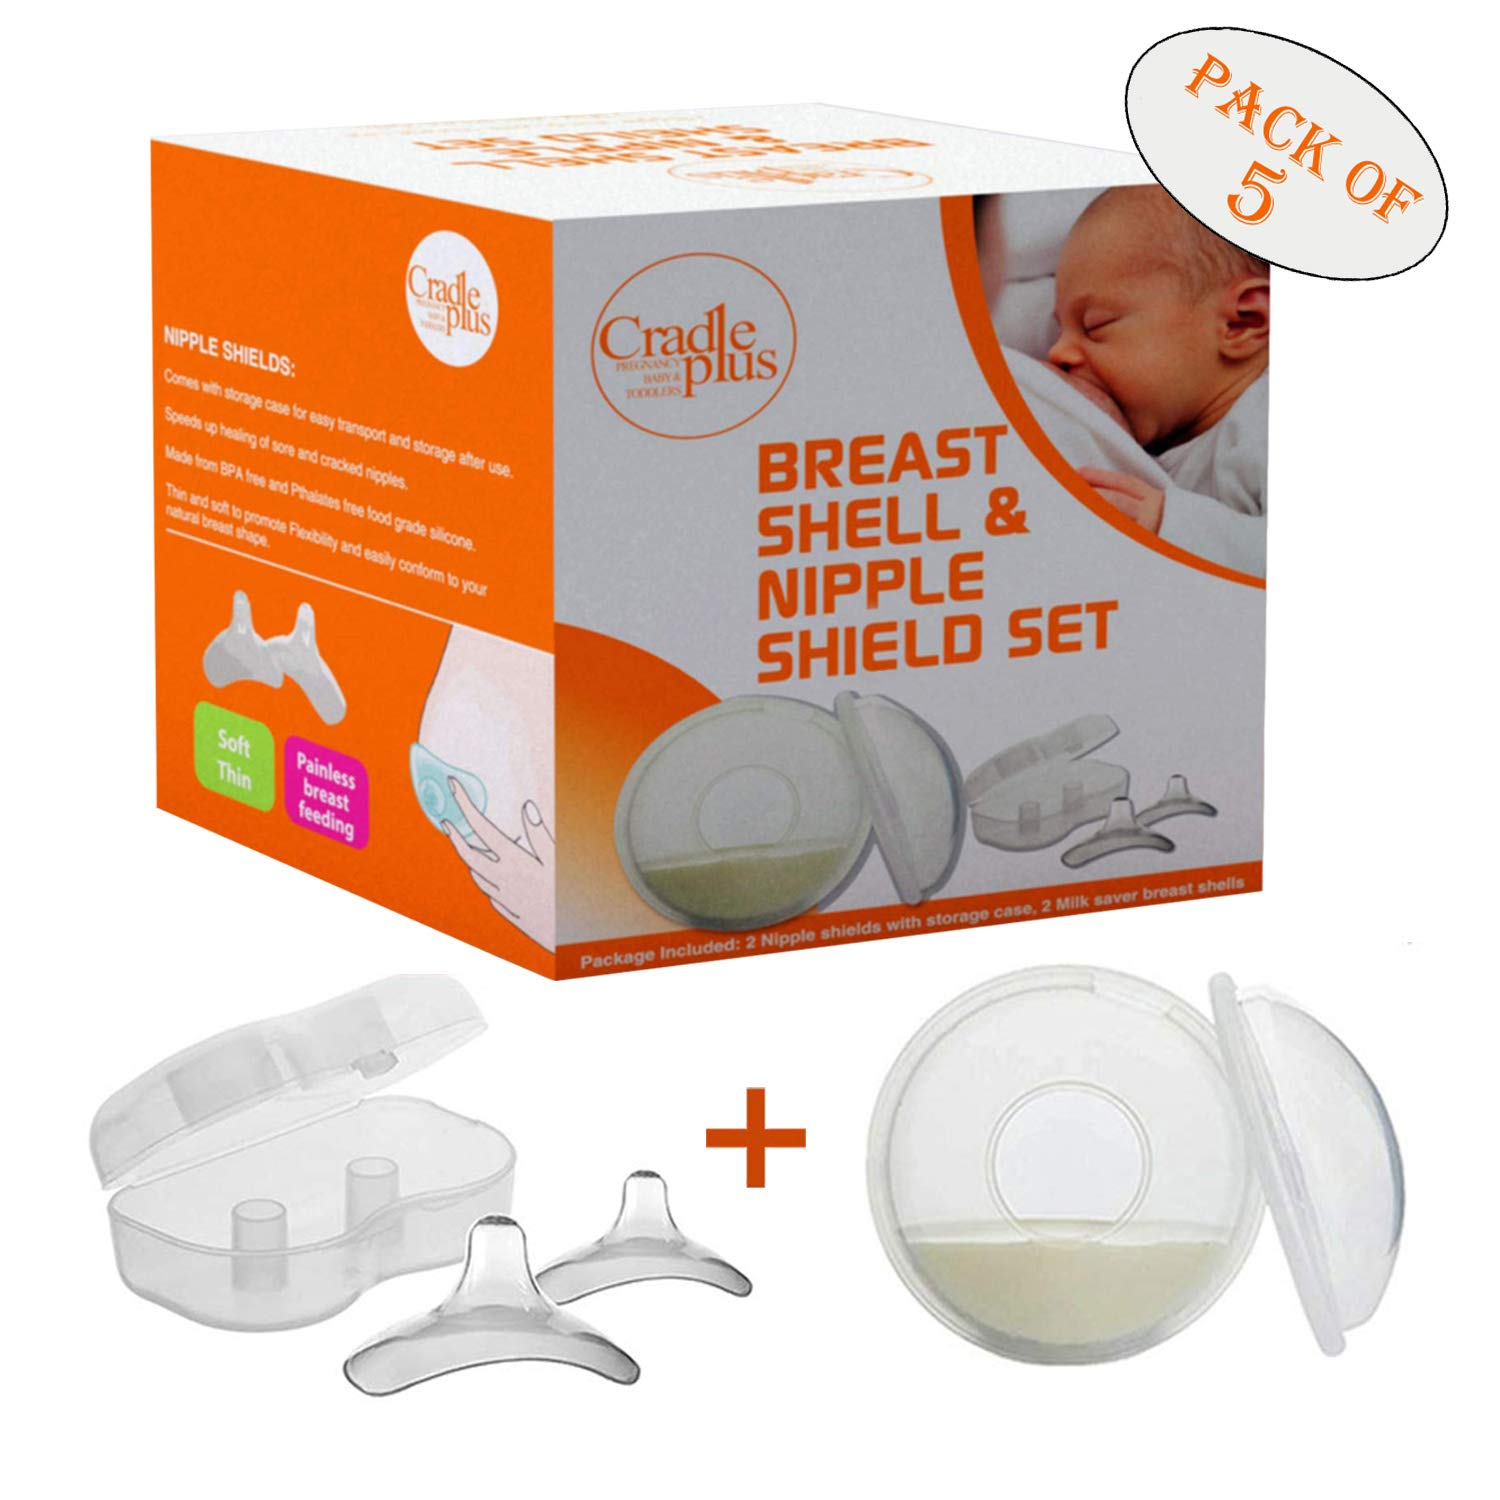 Nippleshield and Breast Shell for Breast Feeding   Nipple Shield in Storage case   Breastfeeding Essentials   Milk Savers or BreastMilk Catcher   Protects Sore Nipples & Collects Breast Milk Leaks by CRADLE PLUS PREGNANCY BABY & TODDLERS